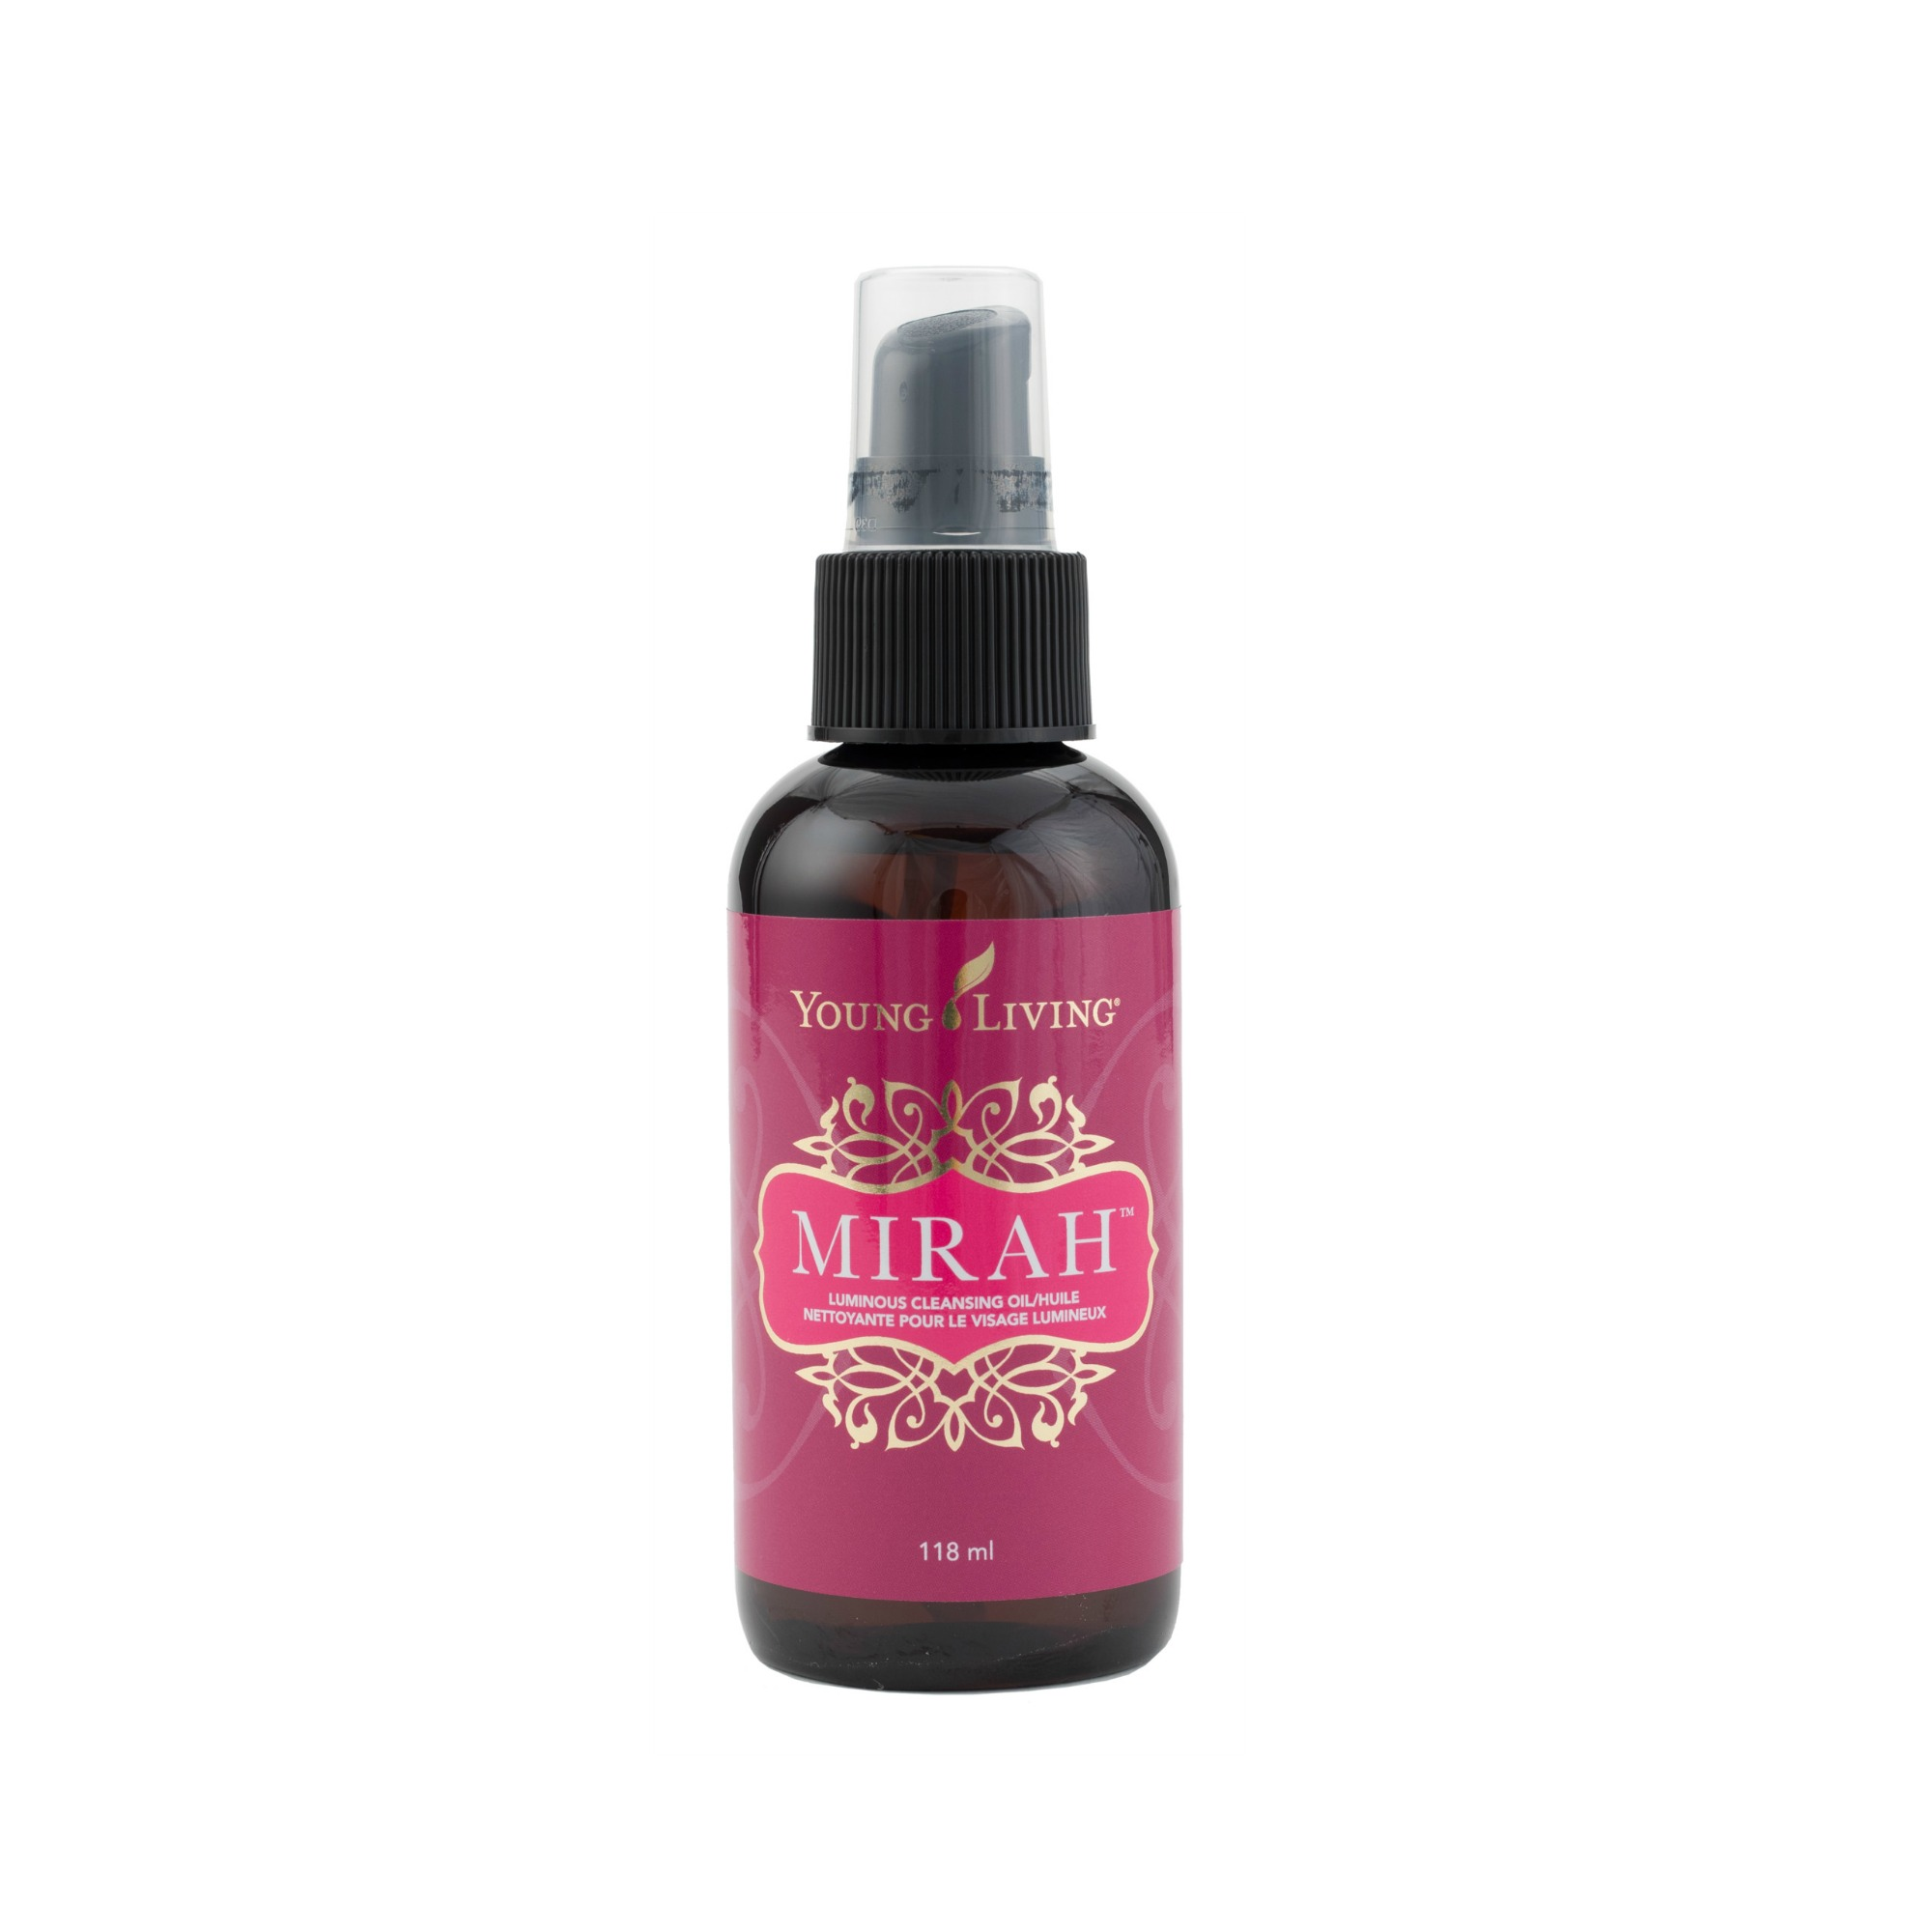 MIRAH LUMINOUS CLEANSING OIL    Formulated with ten essential oils, including Rose and Ylang Ylang, as well as ten moisturizing carrier oils, like jojoba and argan, this facial cleanser removes pore-clogging impurities without stripping away the natural oils your skin needs. It also leaves your skin with a natural, moisturized, healthy glow. Simply massage into skin to dissolve makeup and other impurities, and rinse with water.   Click here   to learn more about this product.